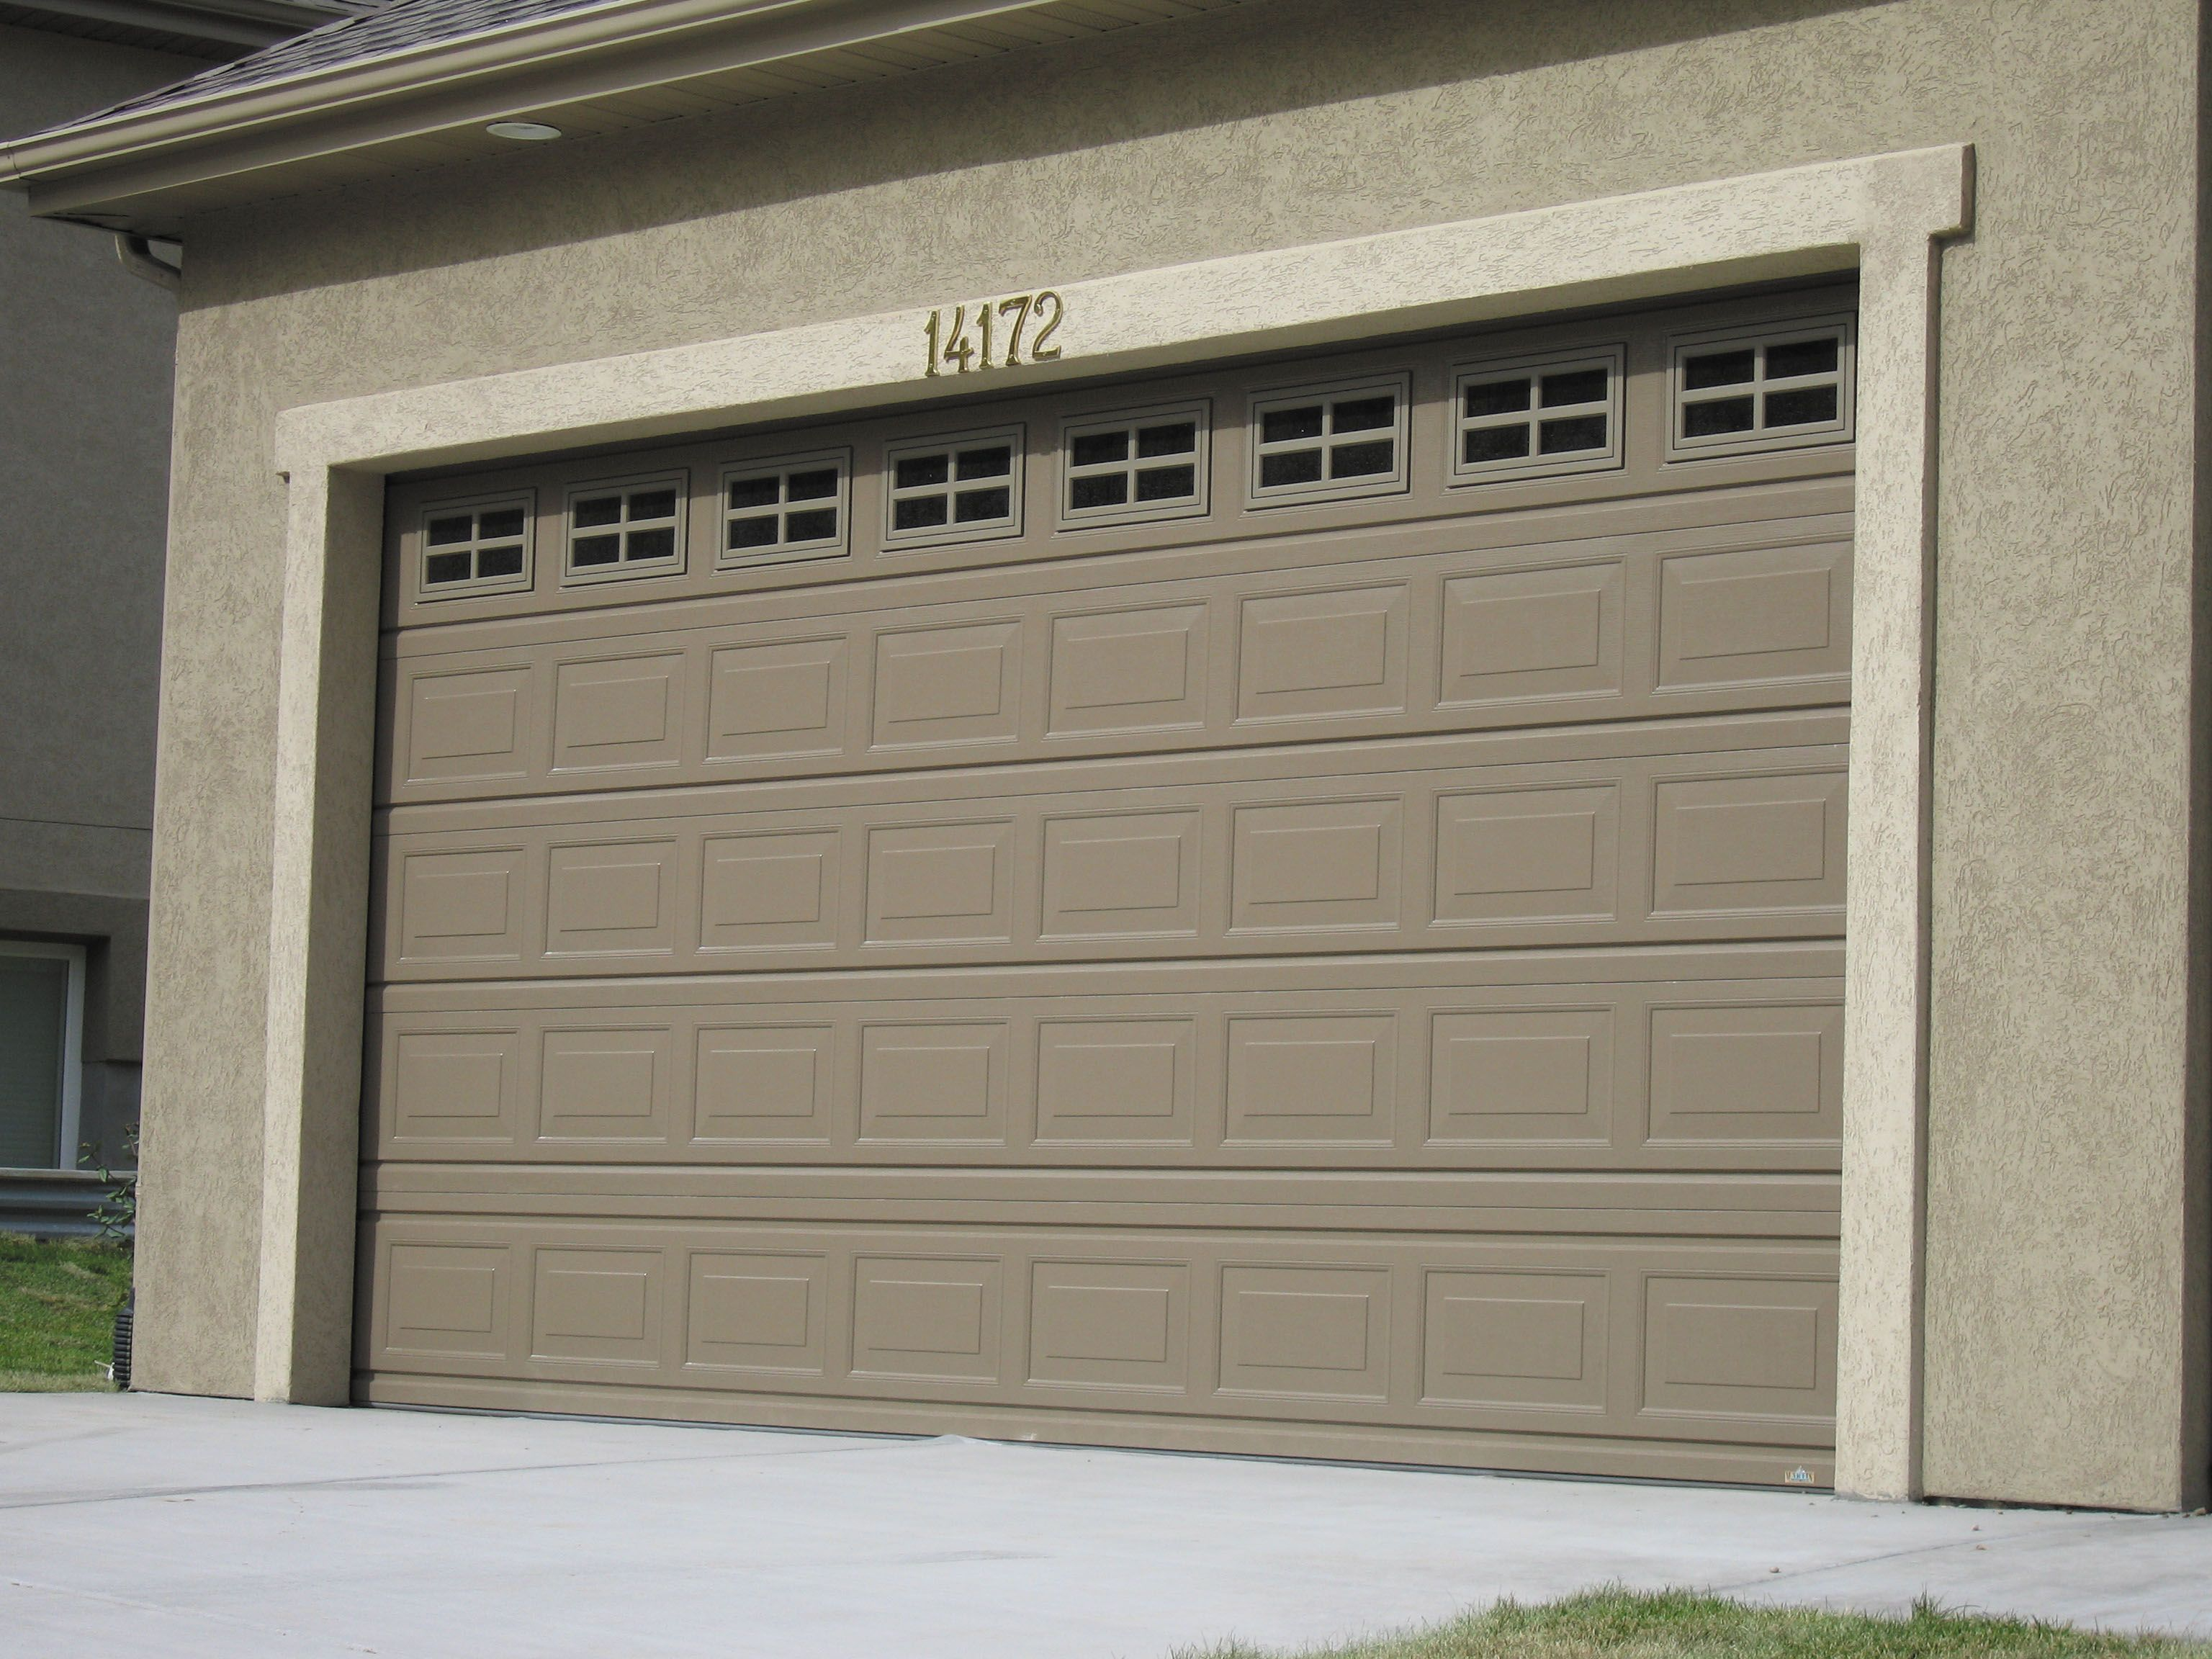 Ordinaire Garage Door Style To Match Front Door Windows. Maybe In Light Almond Or  Desert Taupe